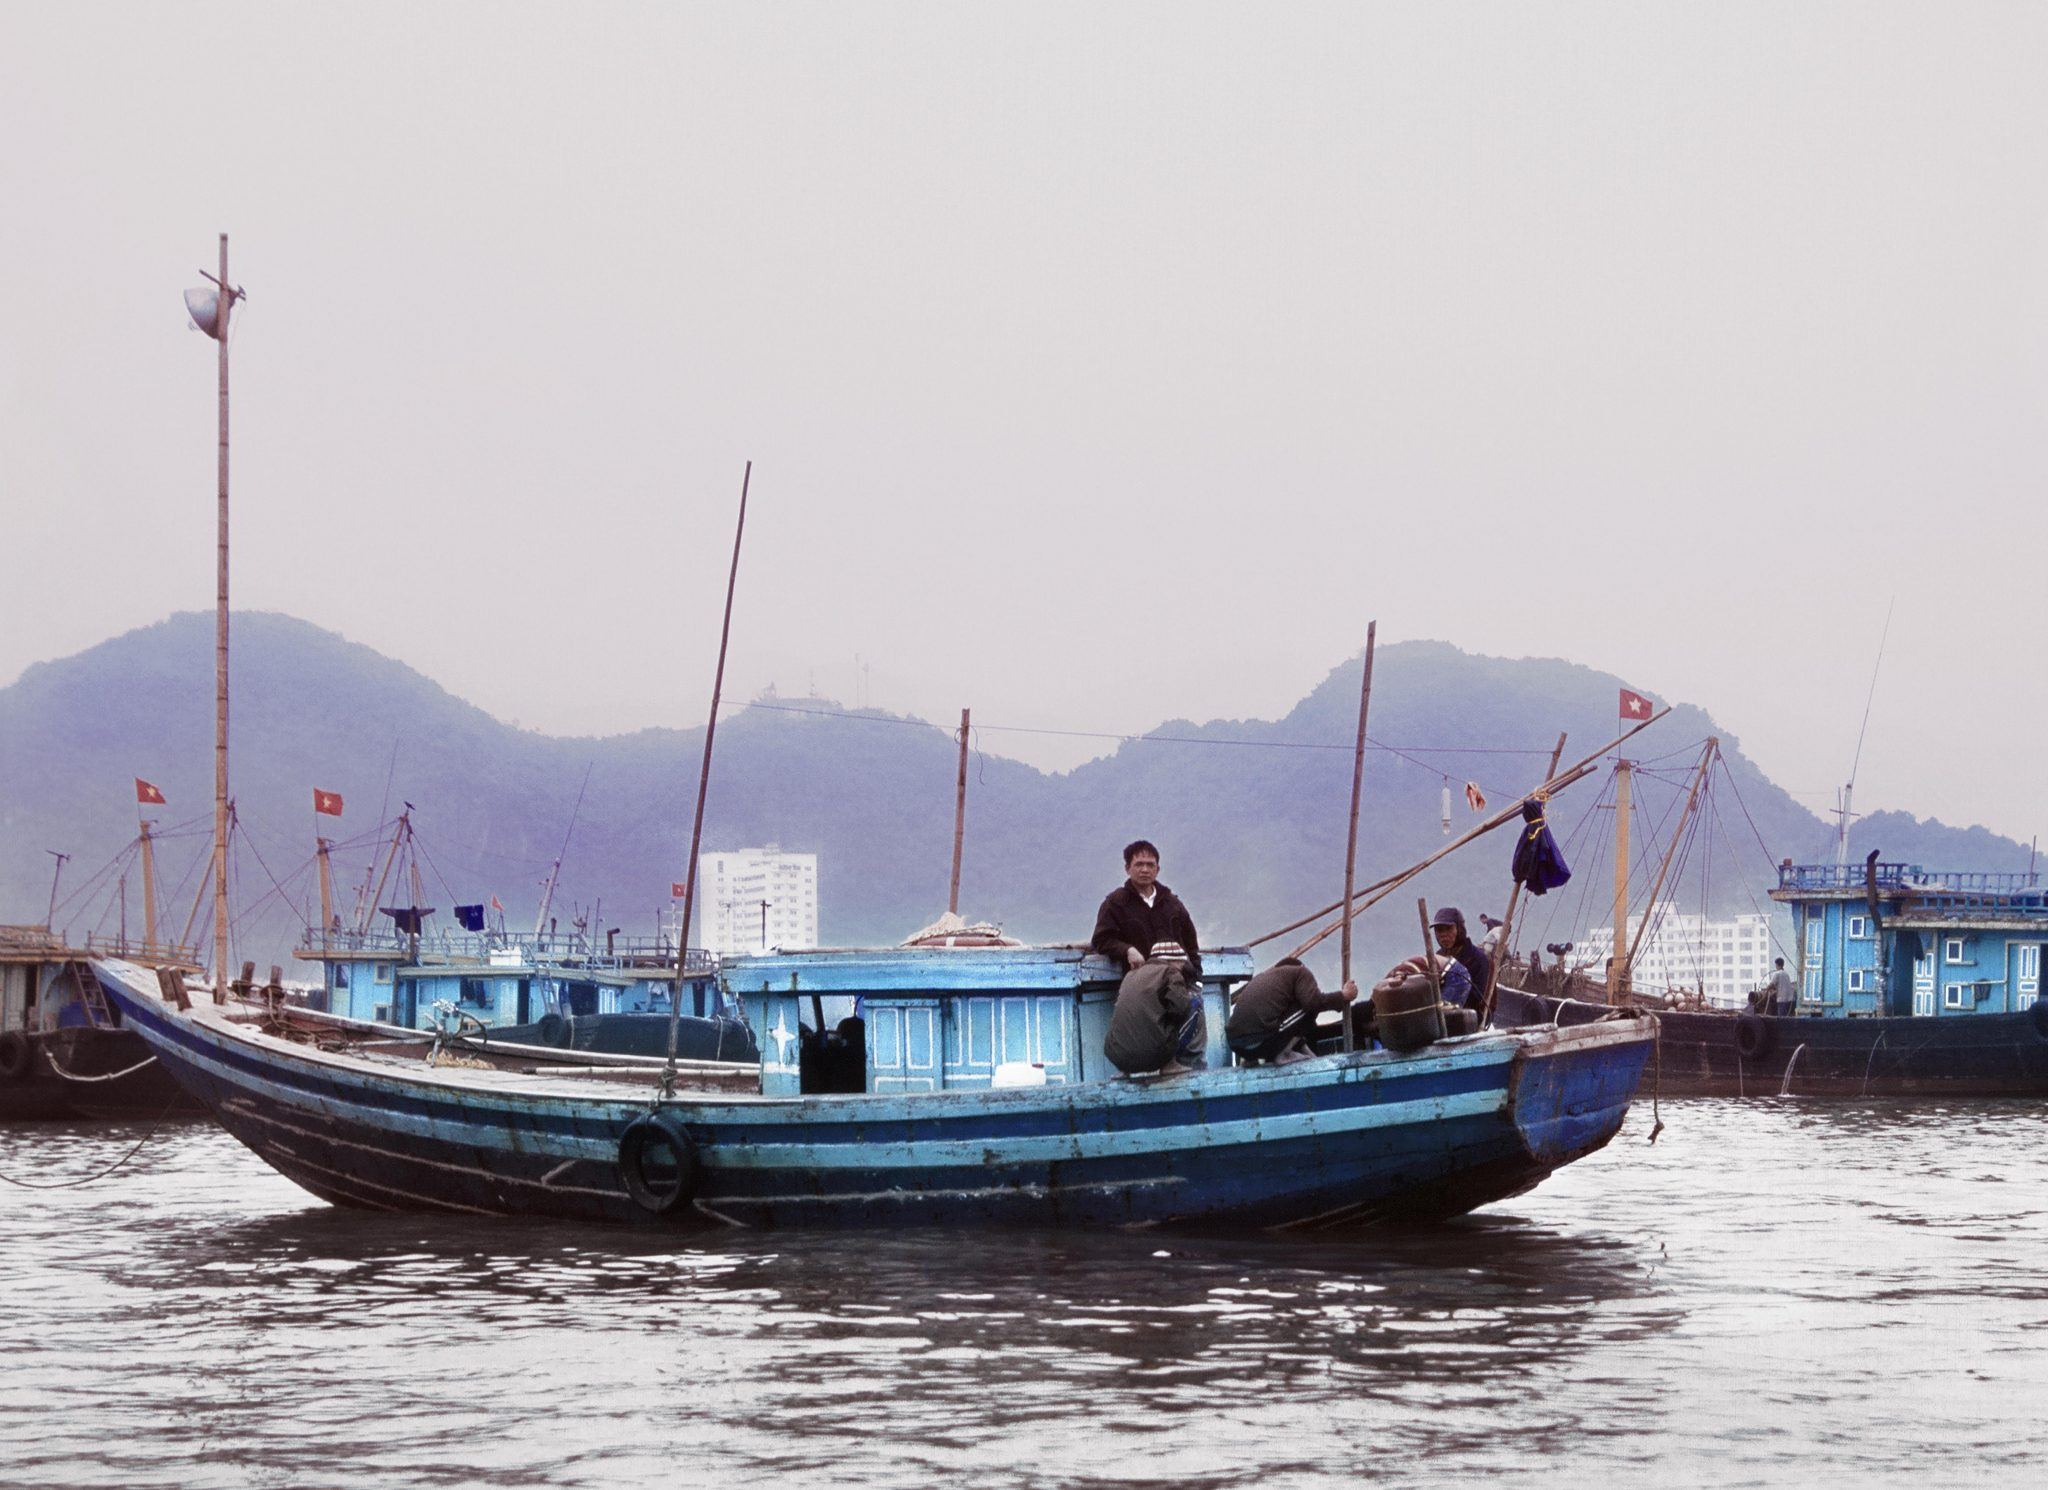 How to understand recent developments in South China Sea fishing